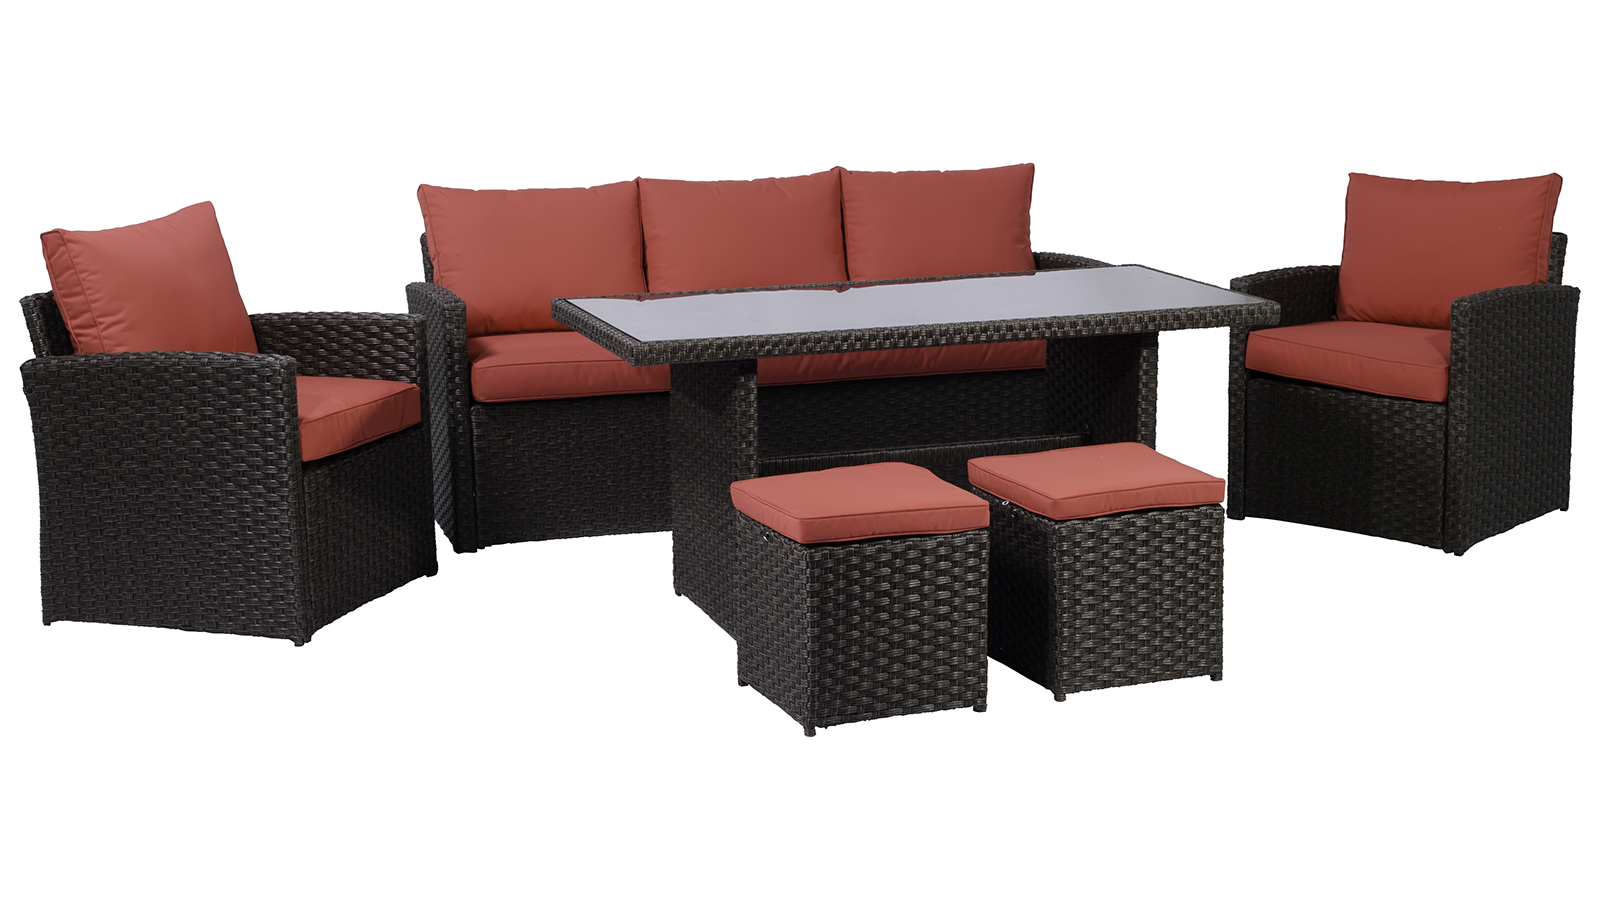 Patio Furniture Winnipeg Mimosa Deep Seating Outdoor Furniture Crown Spas Pools Winnipeg